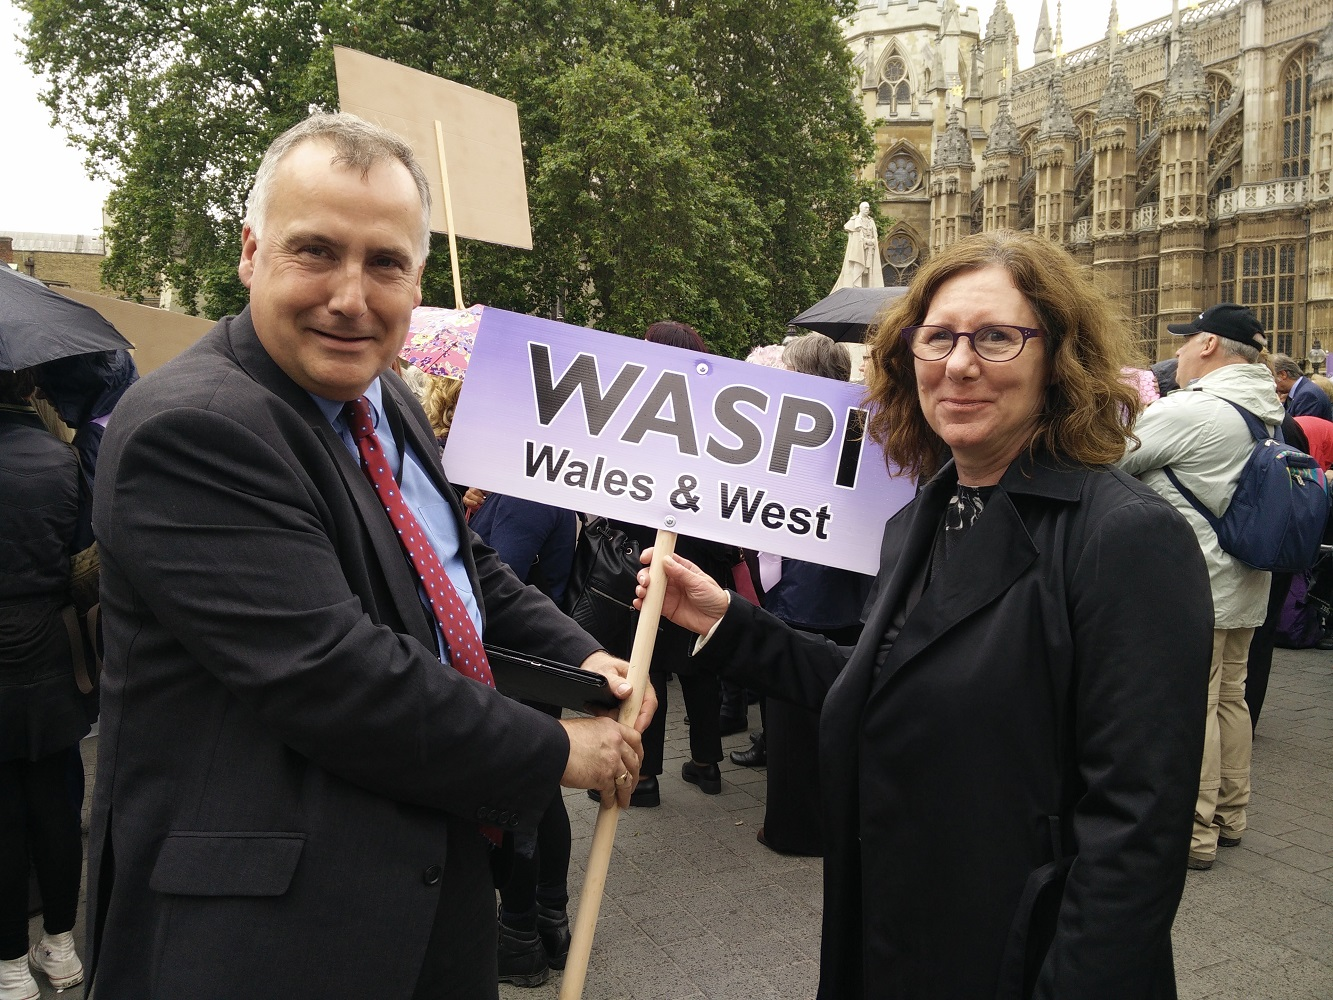 key_Mark_with_Lillian_Stevenson_at_WASPI_rally_290616_s.jpg